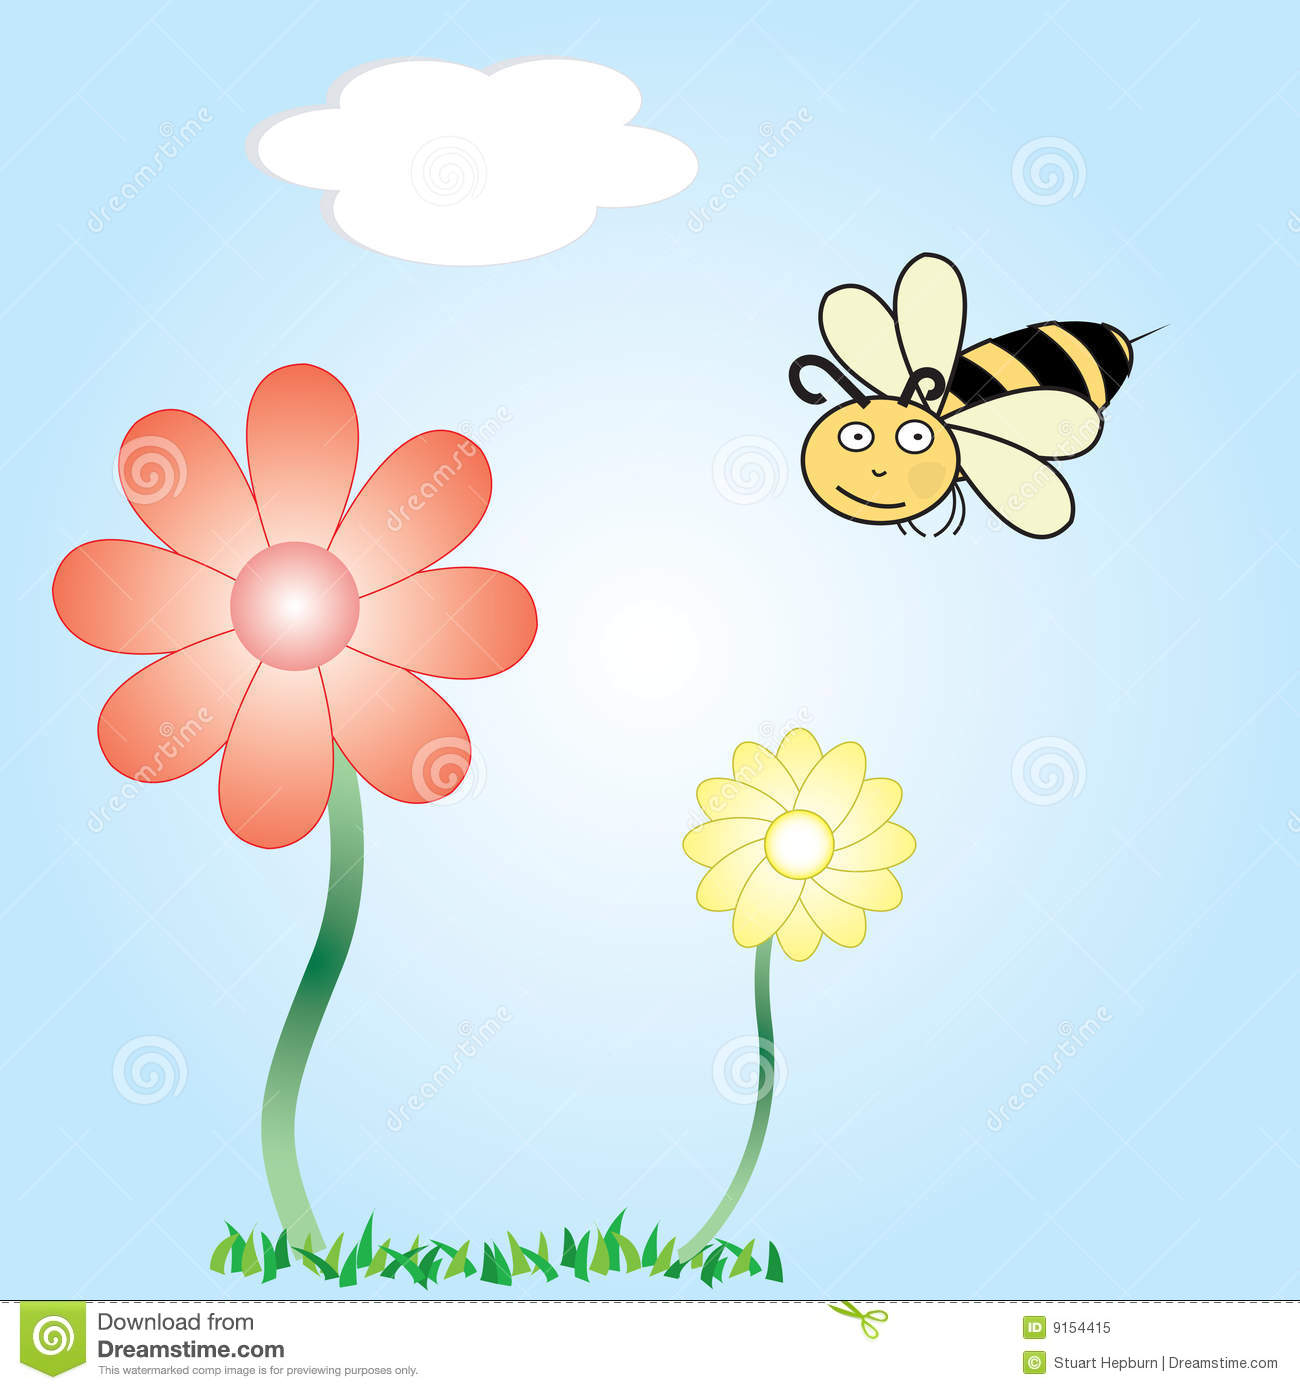 Cartoon Vector Of A Bee And Flowers Royalty Free Stock ...